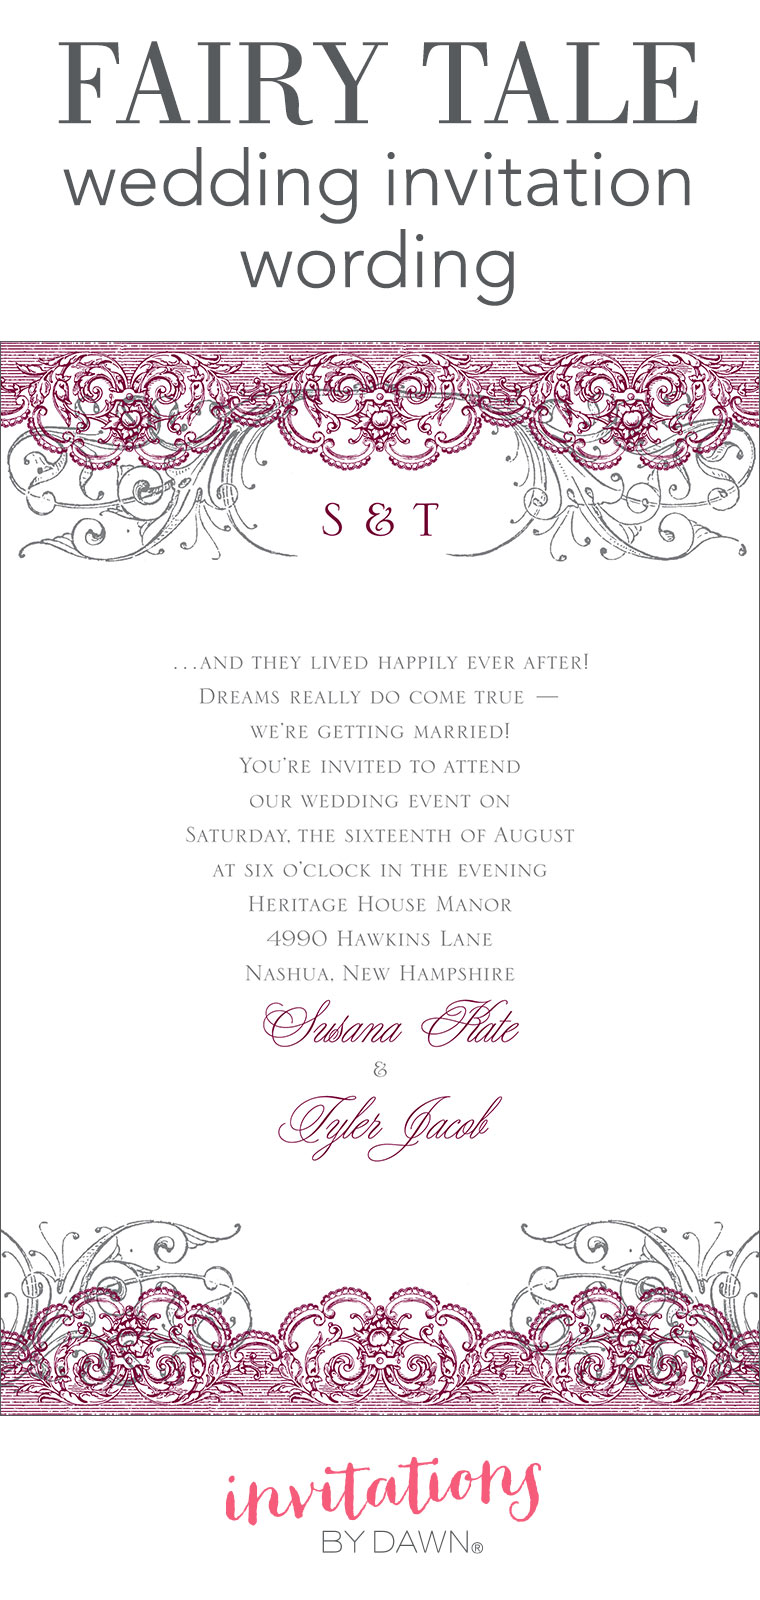 Fairy tale wedding invitation wording invitations by dawn stopboris Images